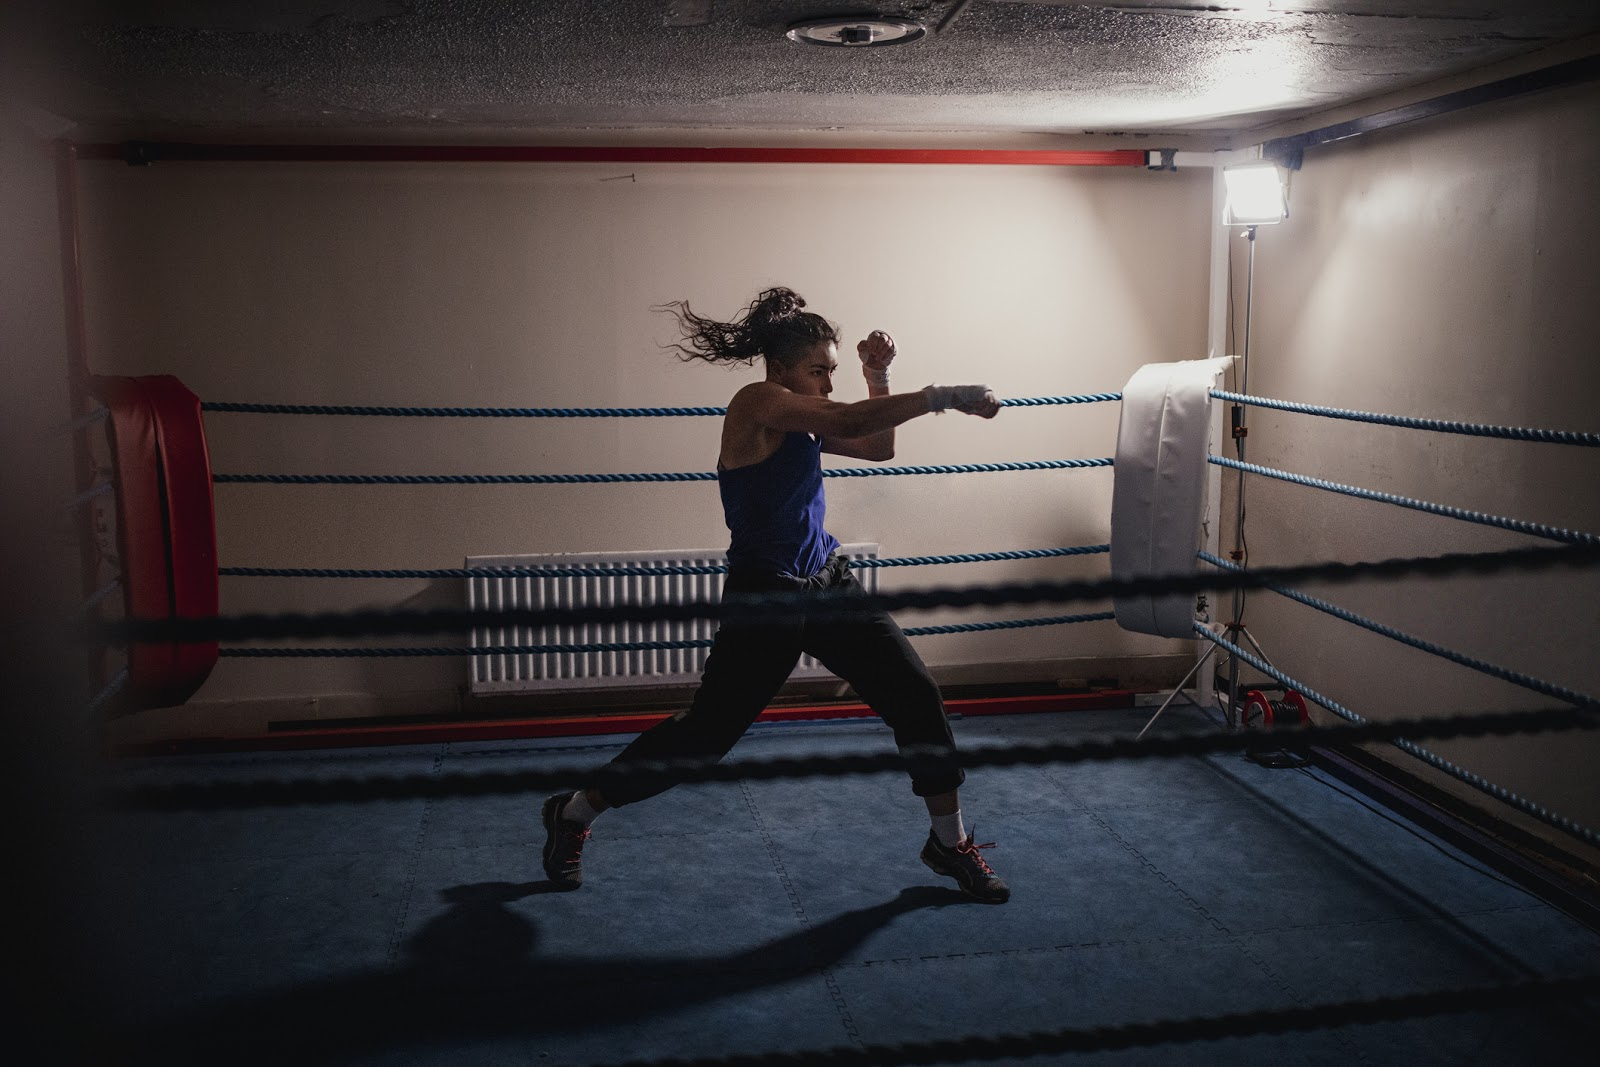 Strong woman training hard and solo using shadow boxing in dimly lit boxing ring.